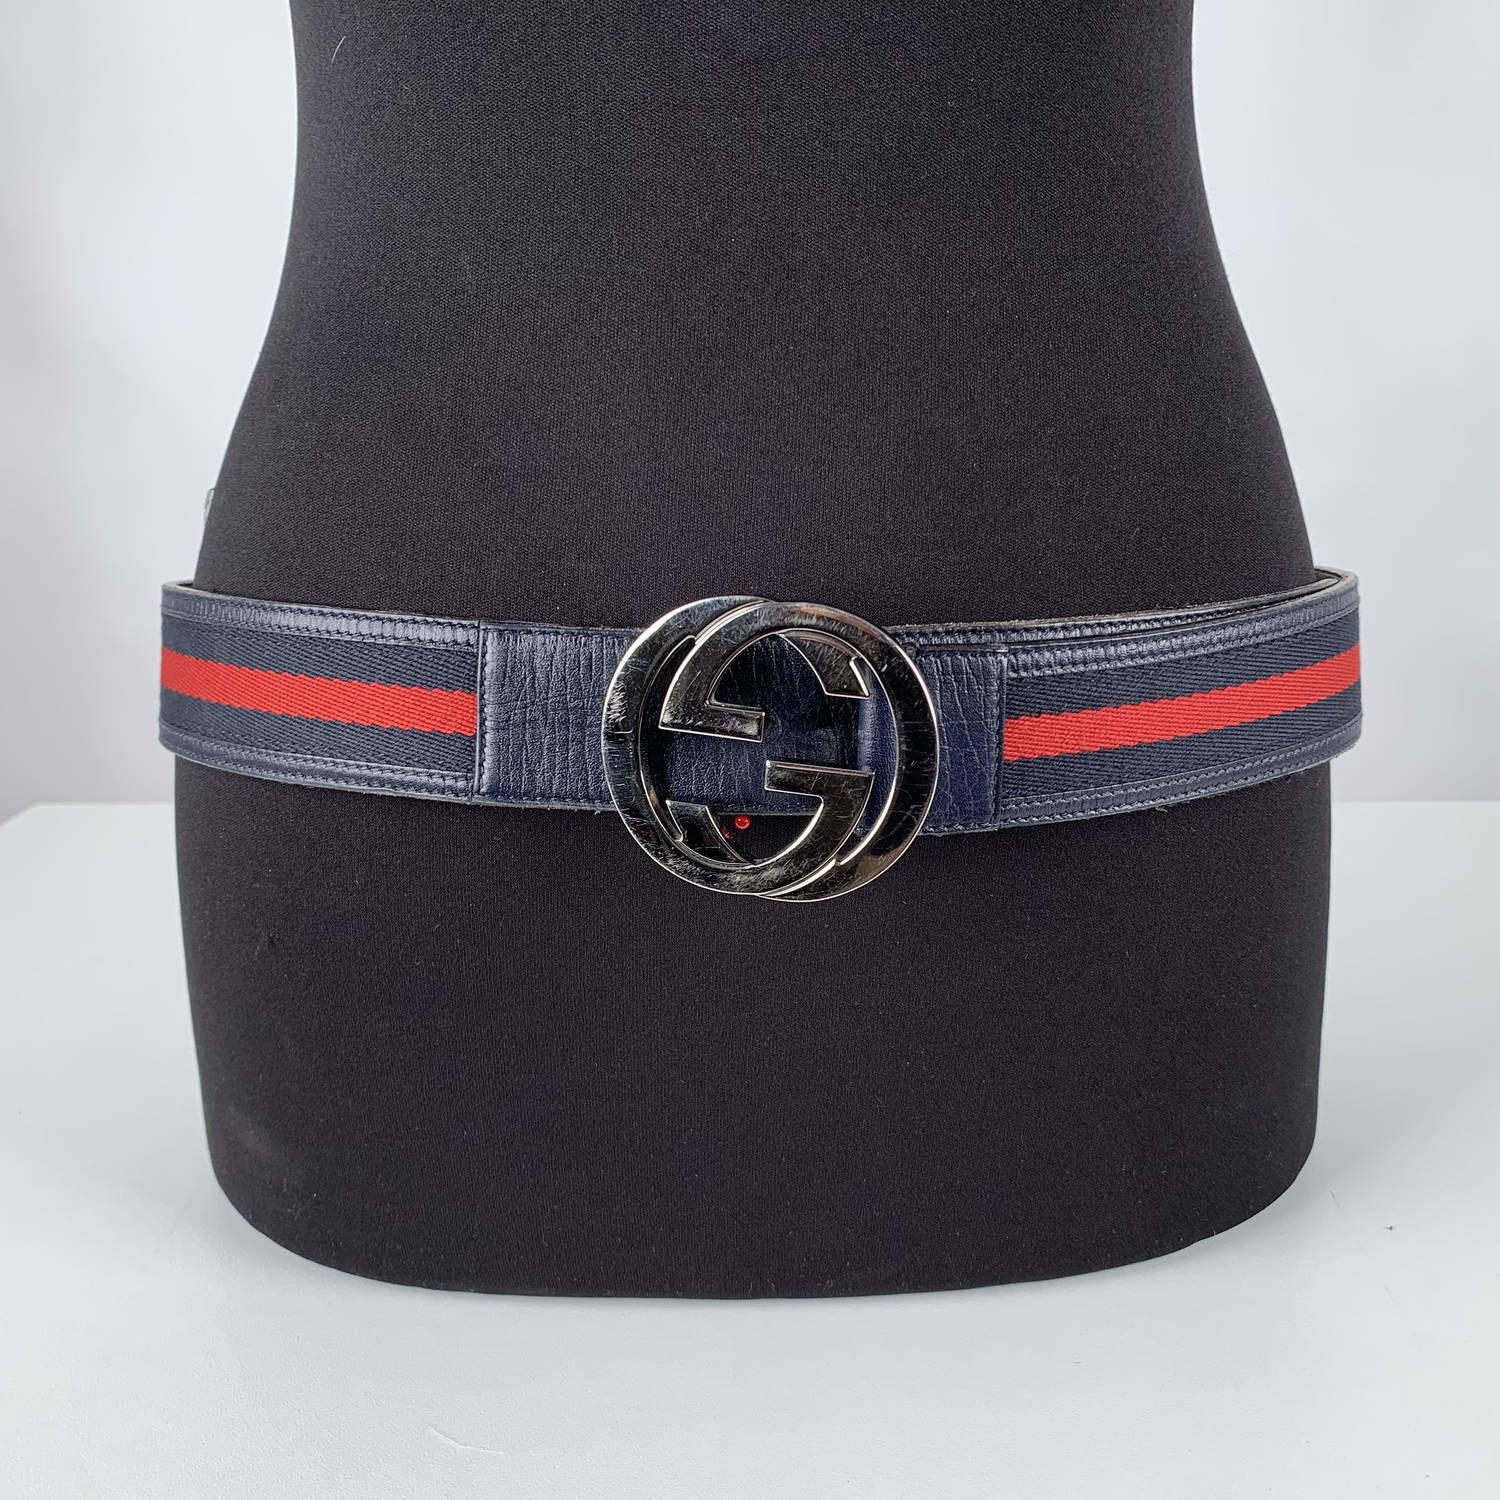 6a0cc4842 Gucci blue and red striped canvas and leather belt. Silver metal GG buckle.  Width: 1.5 inches - 3,8 cm. 'GUCCI - Made in Italy' engraved o nthe reverse  of ...